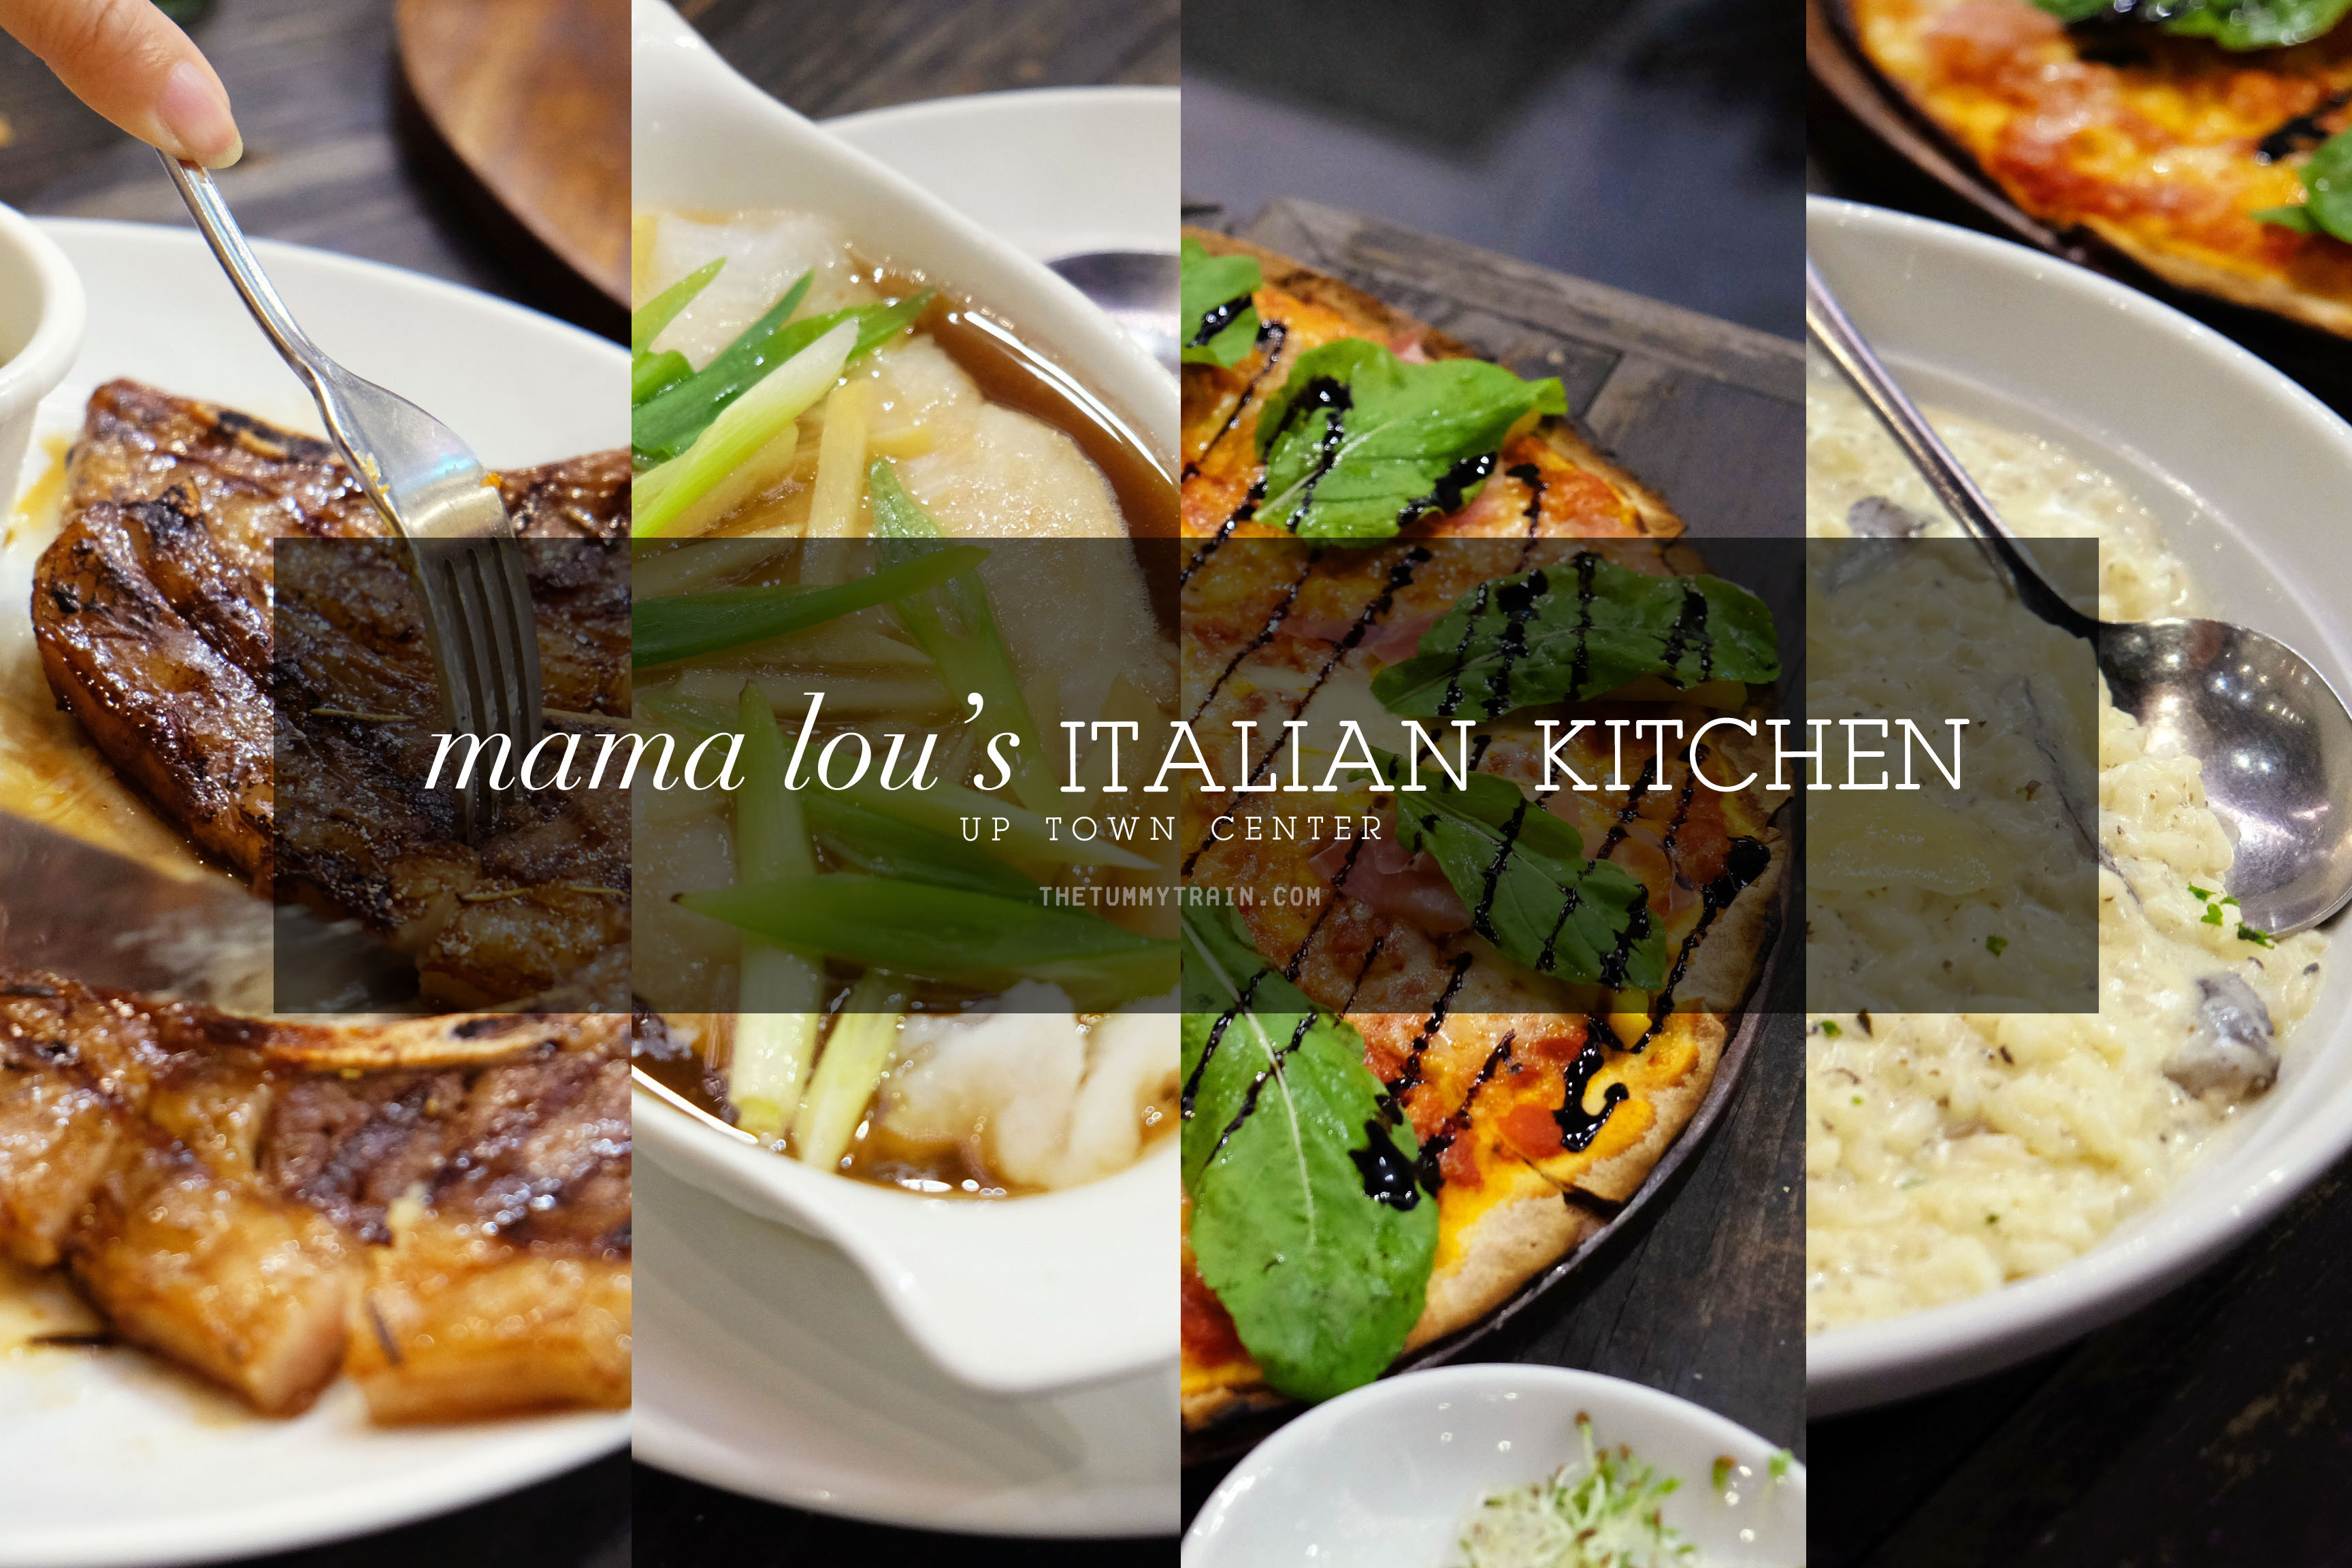 Mama Lous title - A quick stop at Mama Lou's Italian Kitchen to satisfy cravings